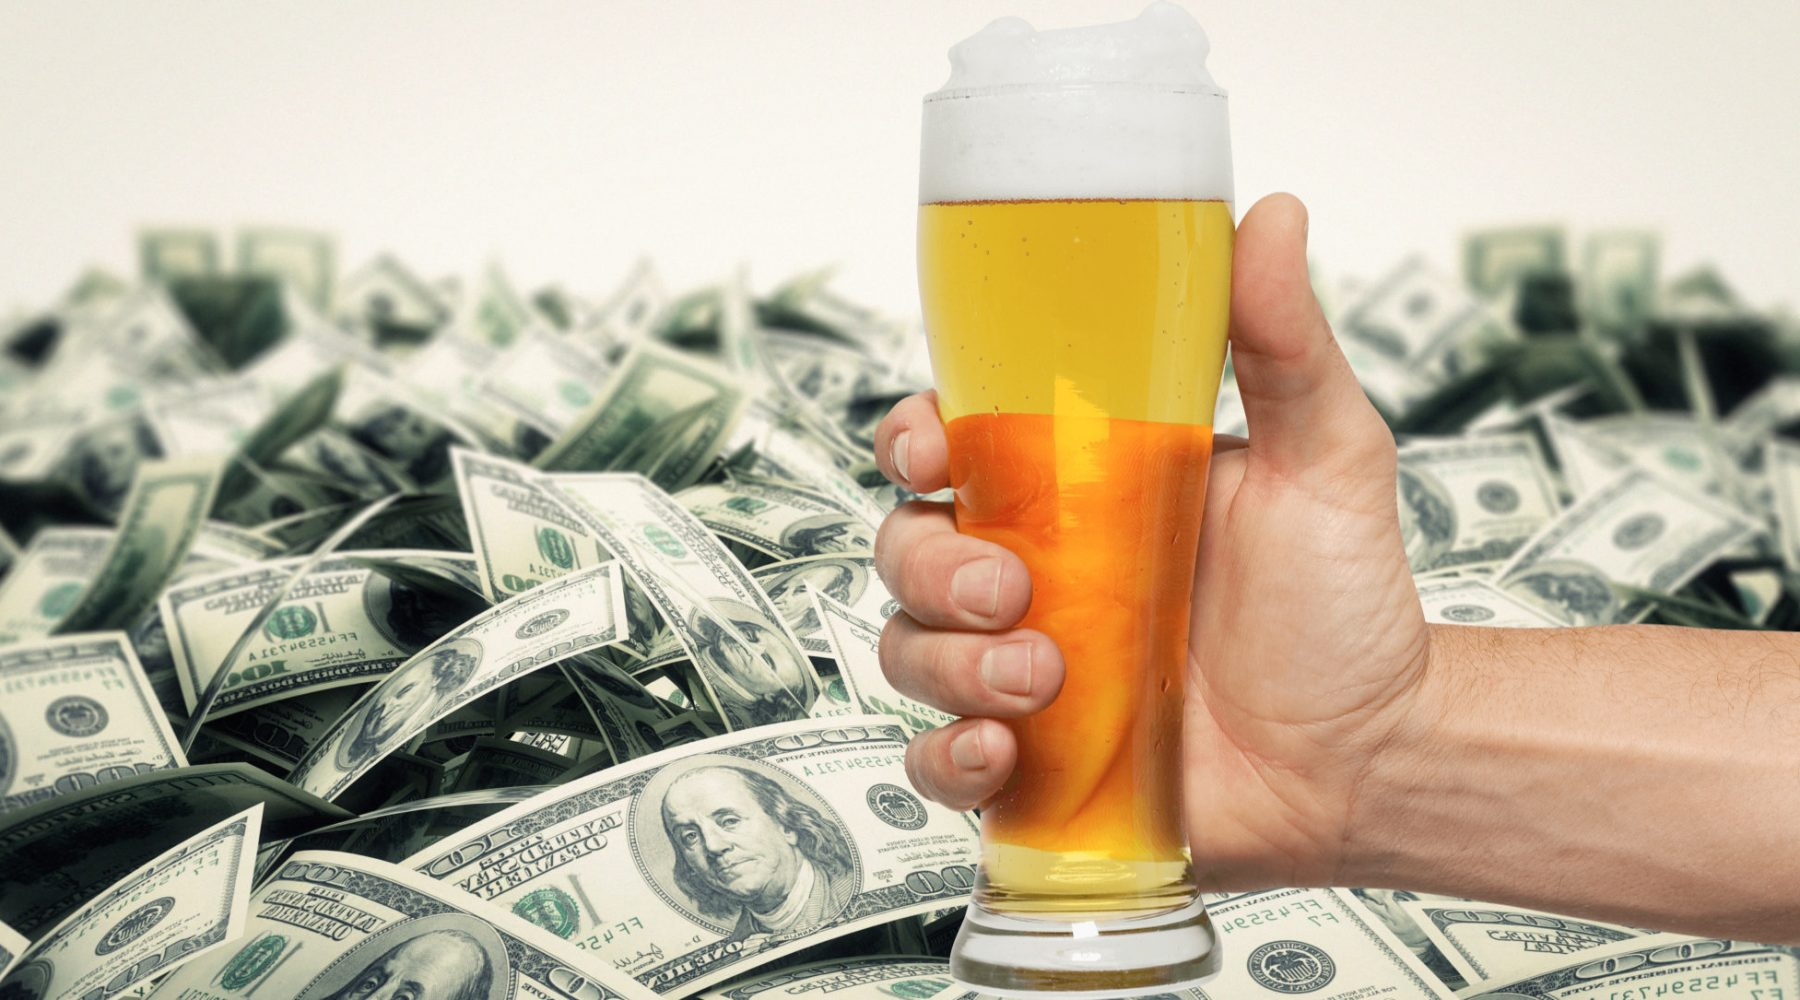 Austrian Man Accidentally Pays $100,000 for a Beer